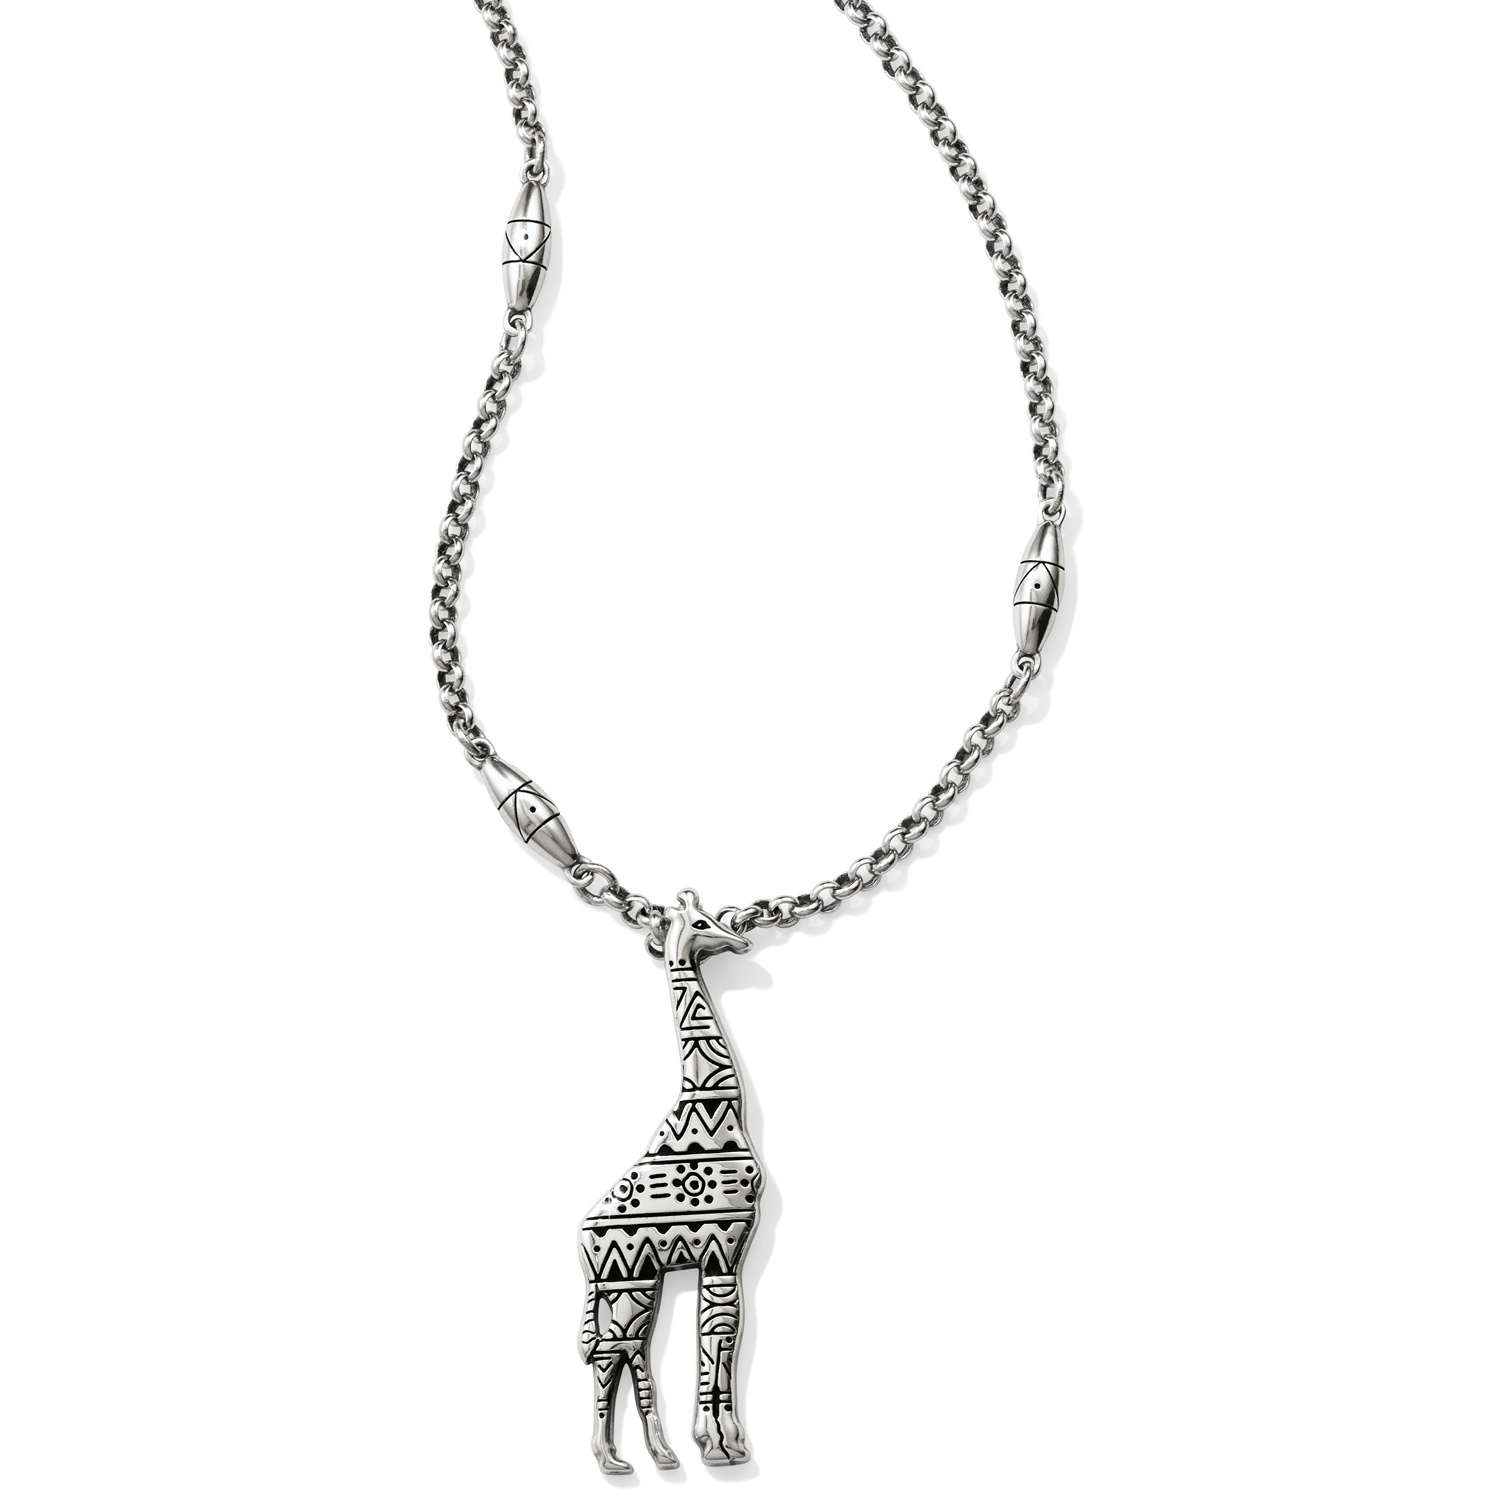 d622216643991 AFRICA STORIES BY BRIGHTON Africa Stories Giraffe Long Necklace ...